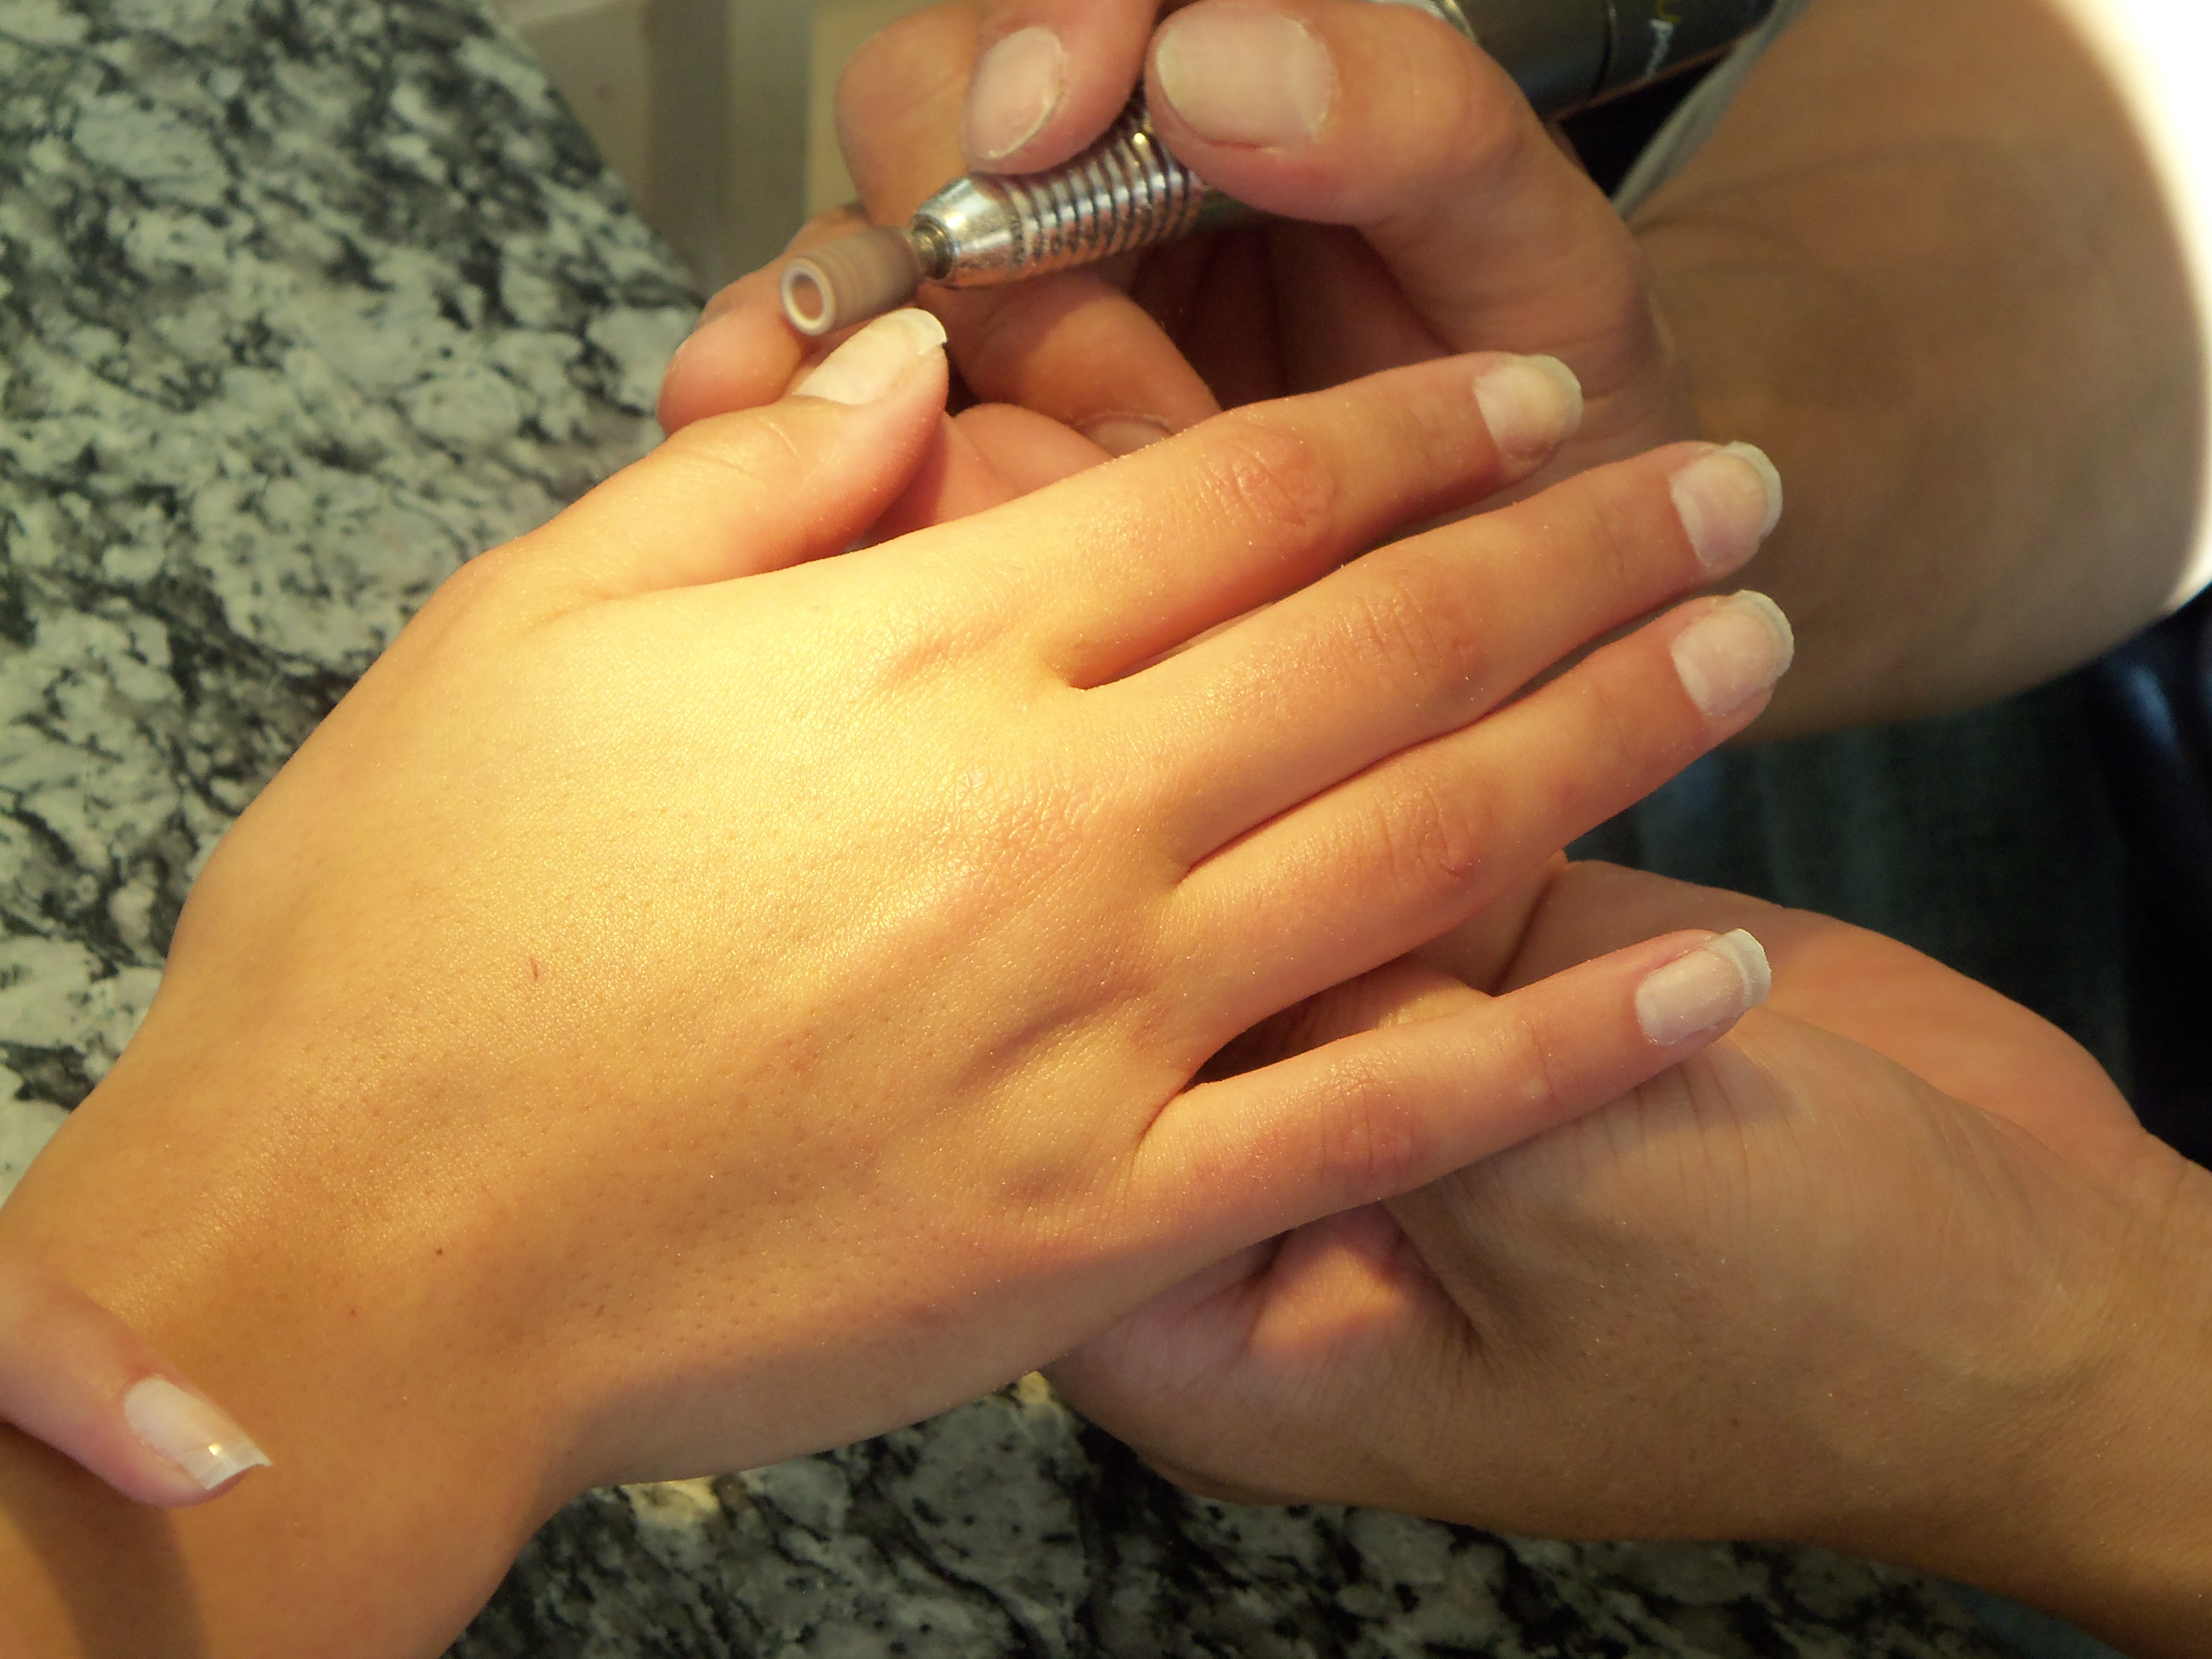 Finger Tip Fashions | Nail Art Trends & Fashions in the SJ/Philly Area